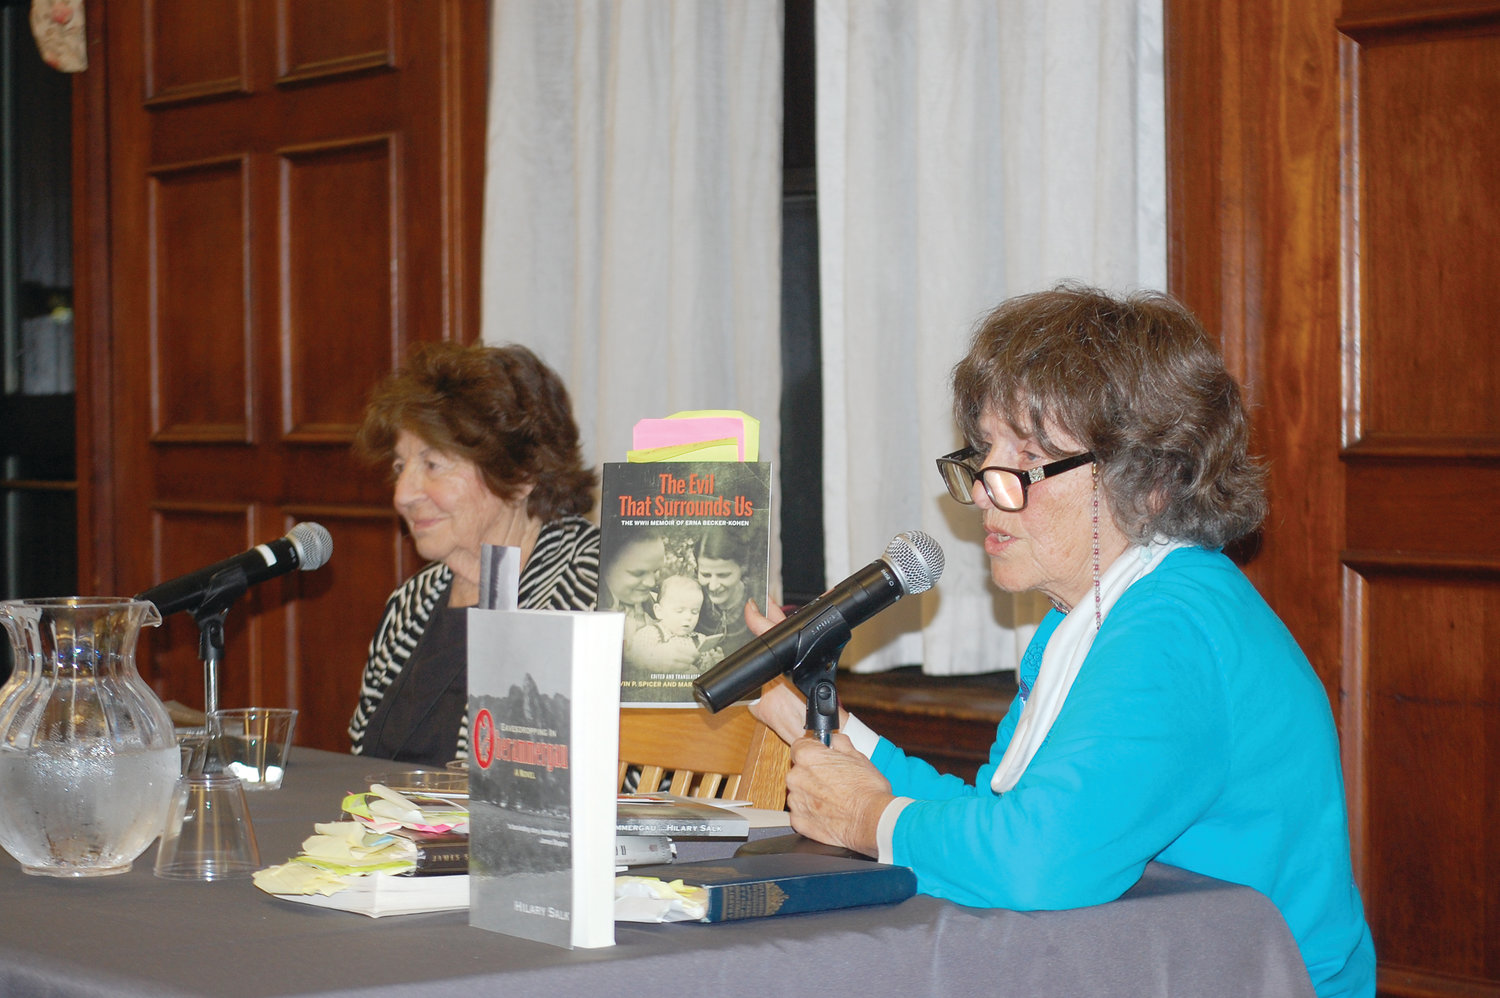 "From left, Judith Banki, senior advisor on Interreligious Affairs, Tanenbaum Center For Interreligious Understanding, and Hilary Salk, author of ""Eavesdropping in Oberammergau,"" speak at PC's Center for Catholic and Dominican Studies during the Jewish-Christian Theological Exchange on Oct. 24."